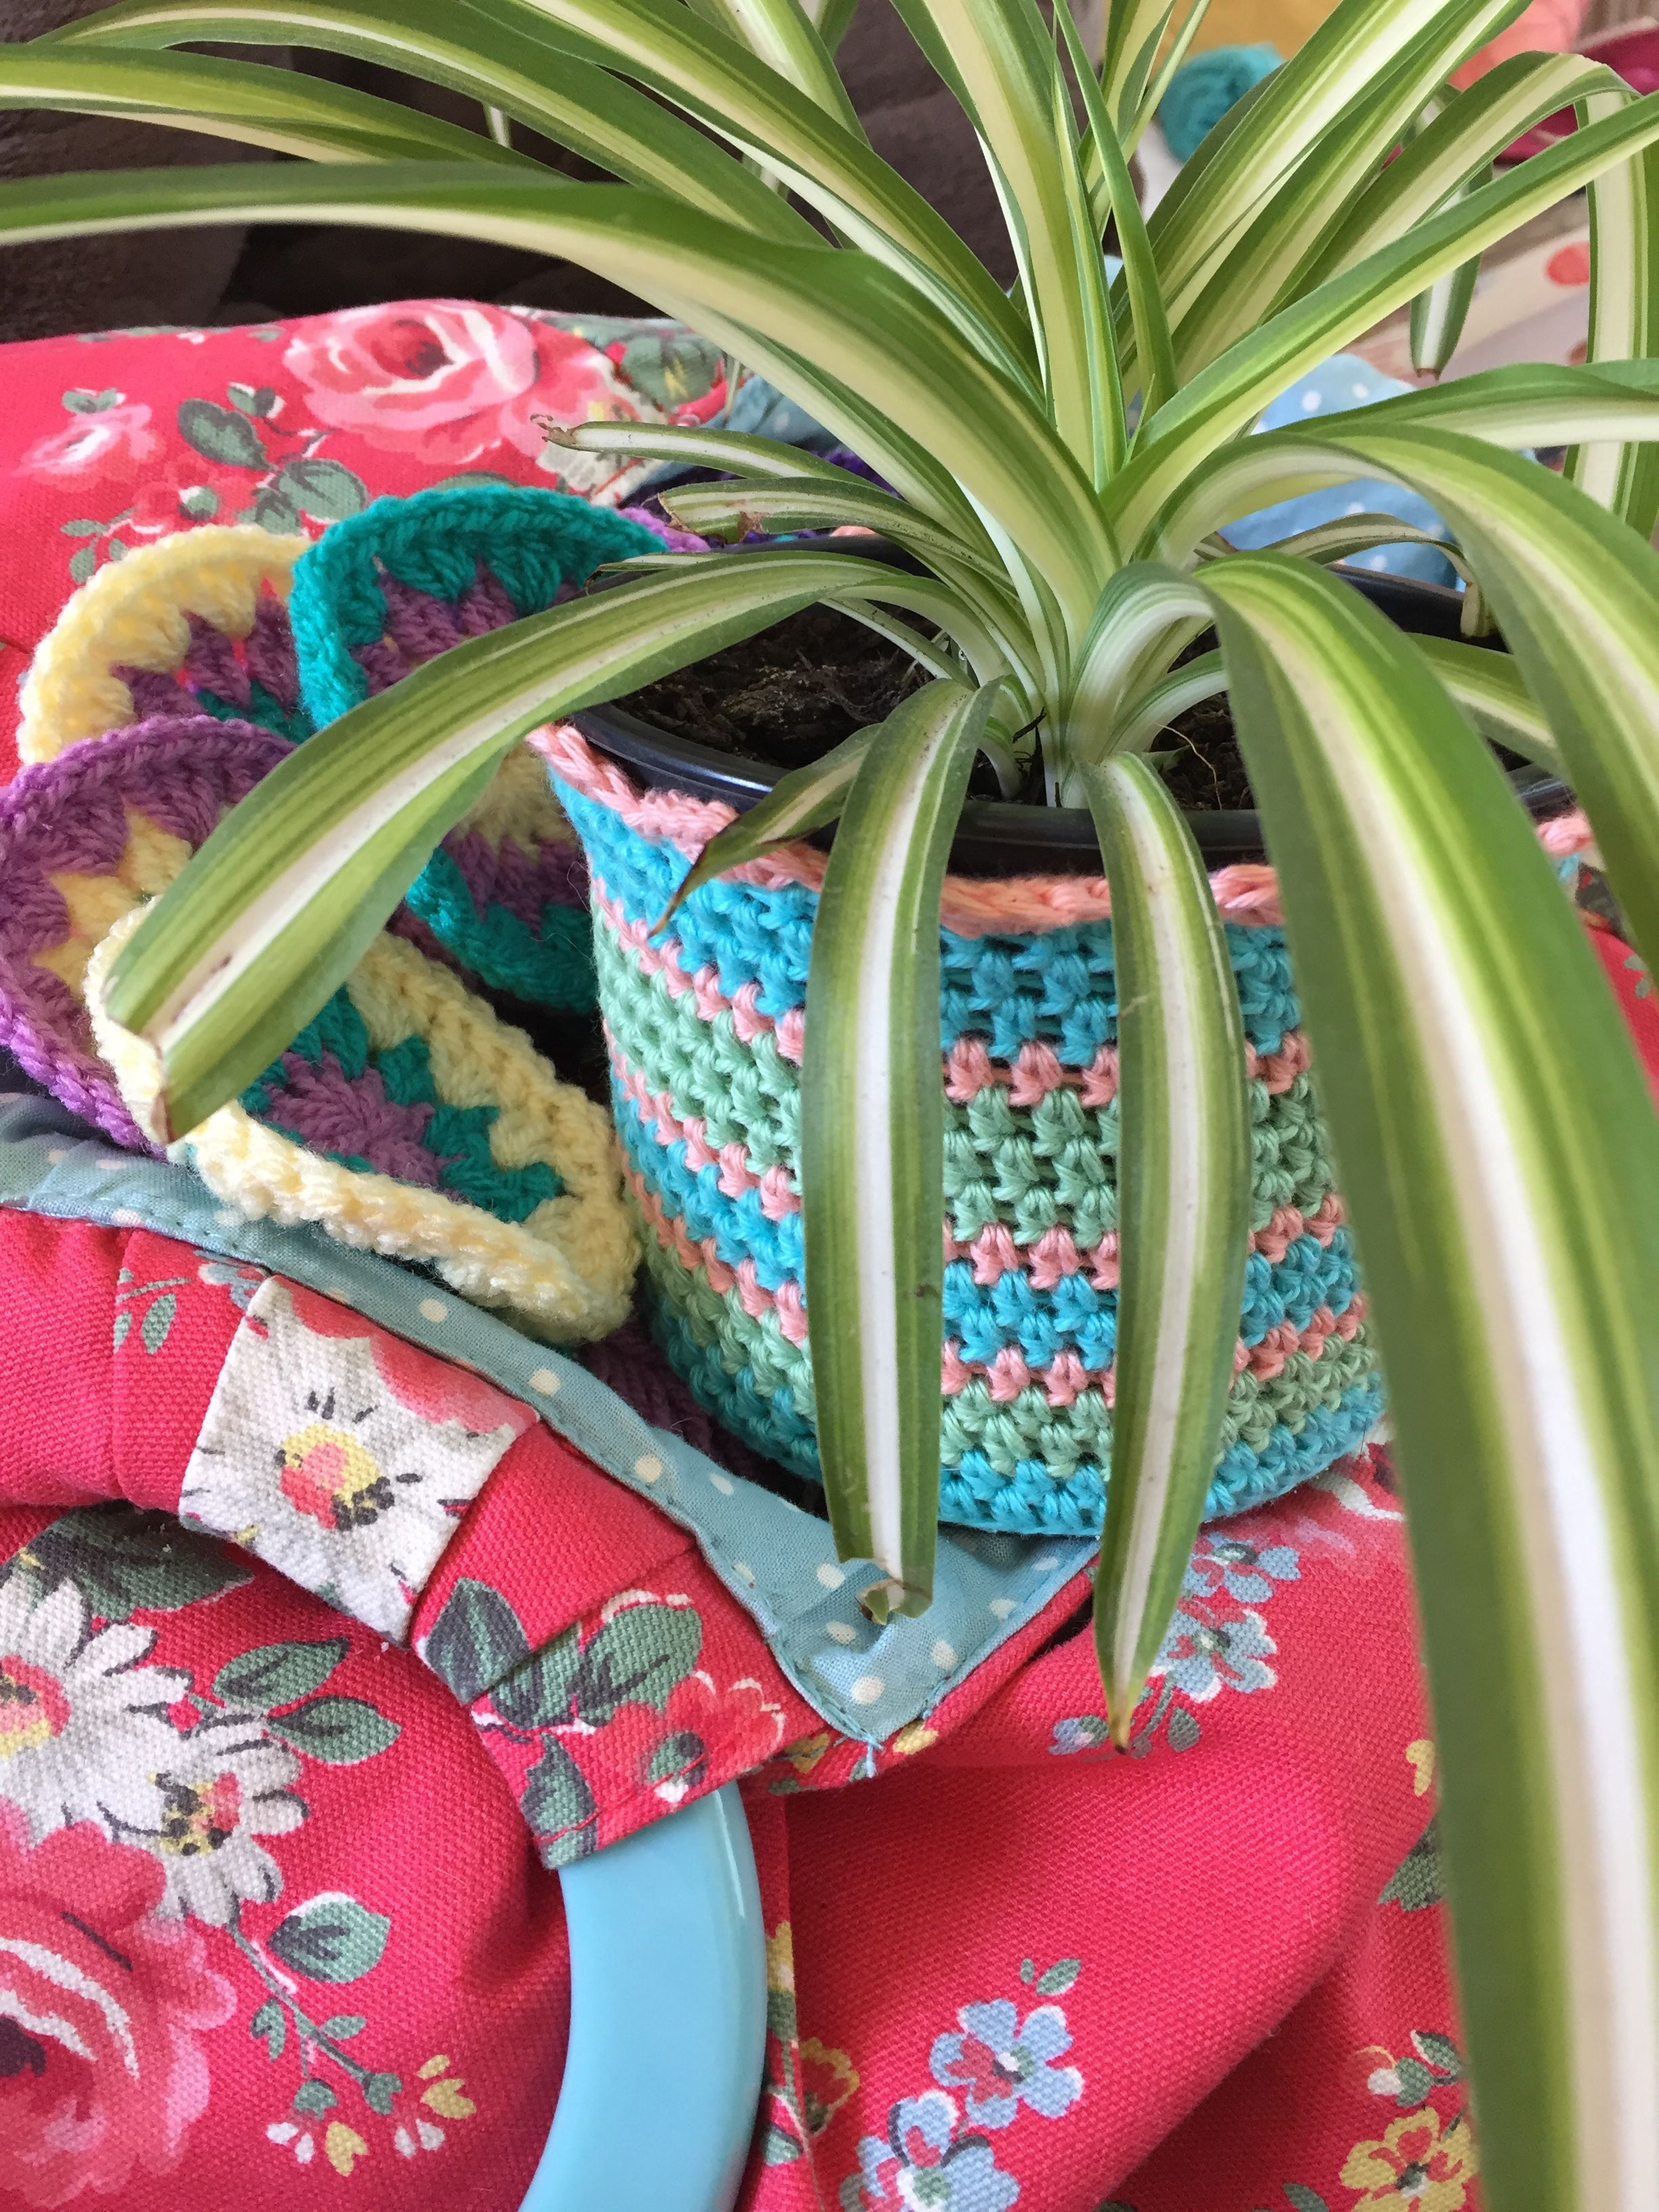 Mother's Day gift of a spider plant with a crochet cozy kizzcazz.etsy.com